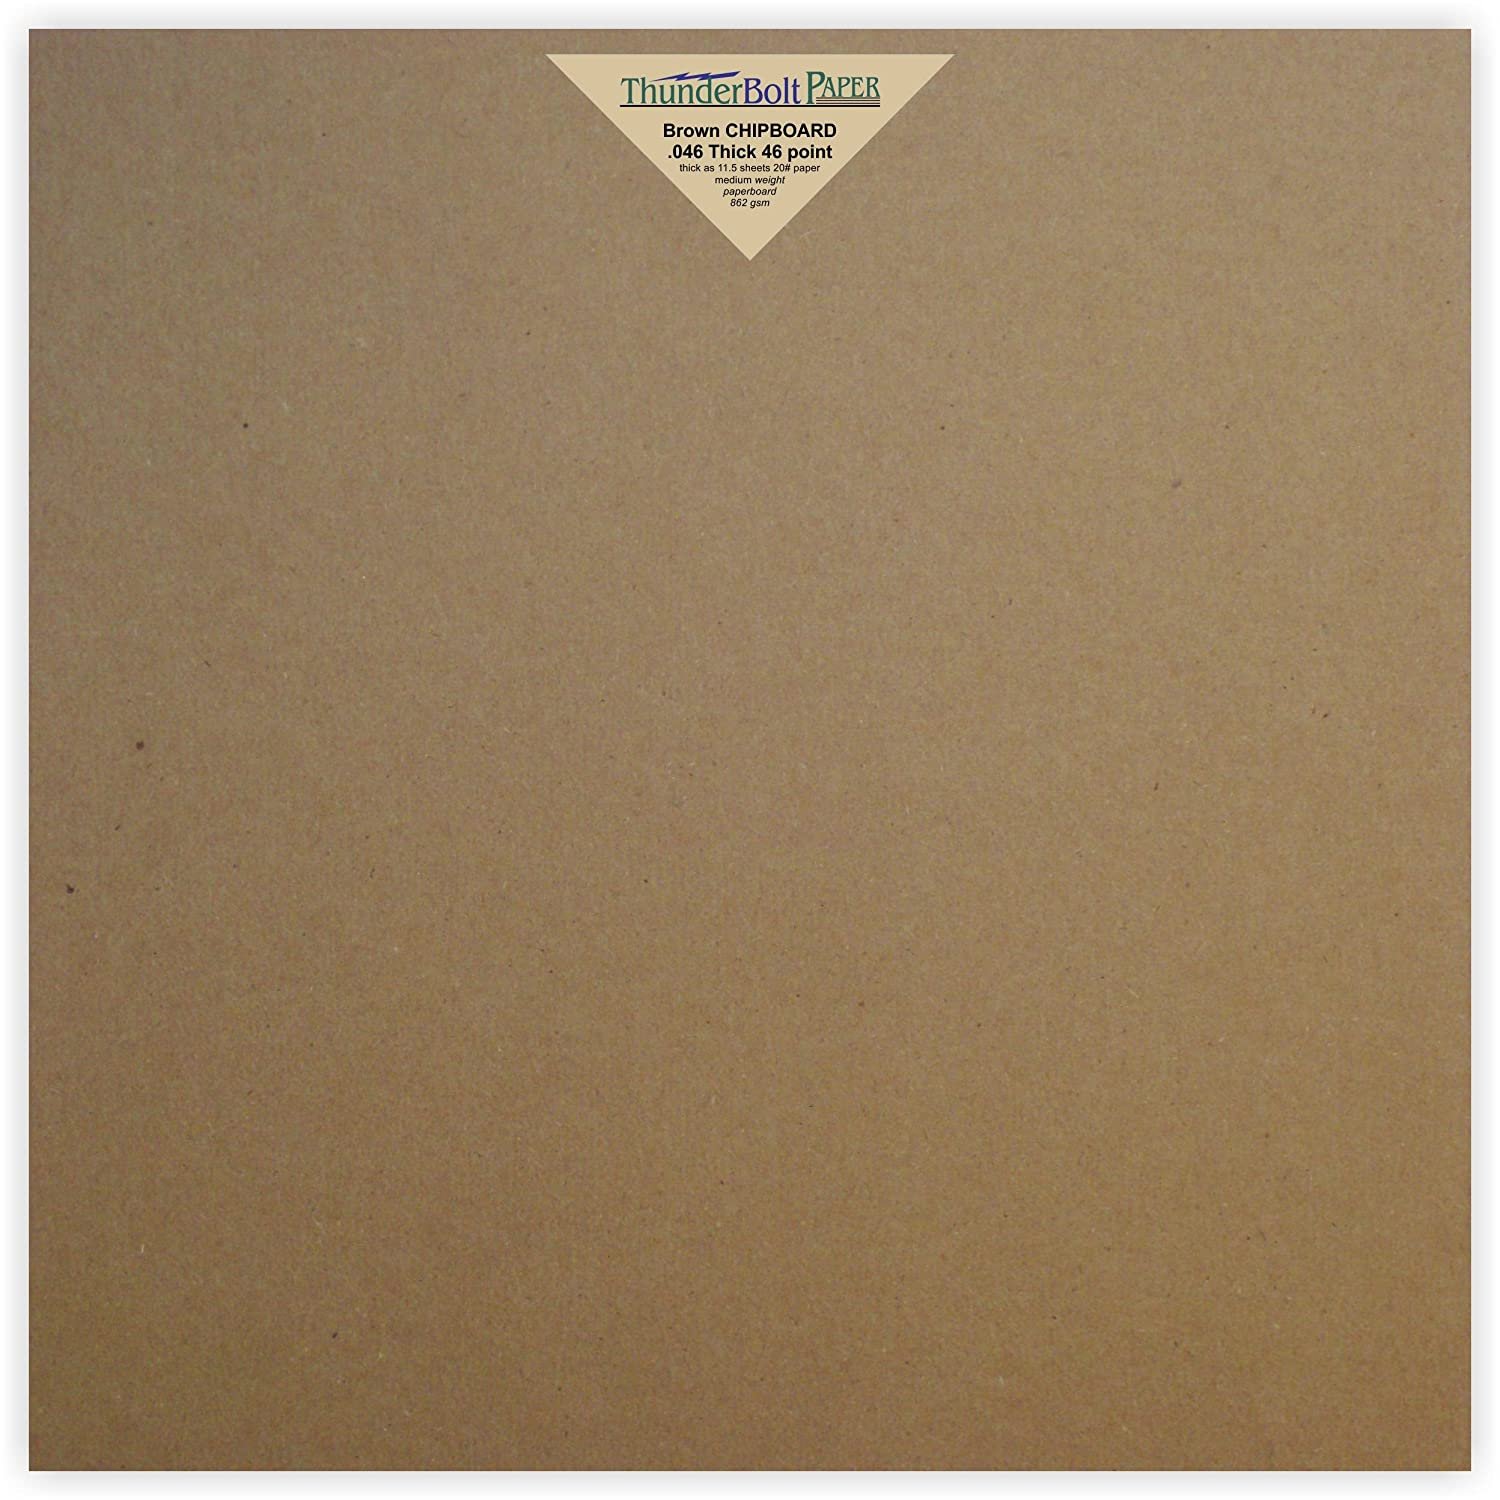 15 Sheets Chipboard 46pt (point) 12 X 12 Inches Heavy Weight Scrapbook Size .046 Caliper Thick Cardboard Craft|Packaging Brown Kraft Paper Board by ThunderBolt Paper TBP